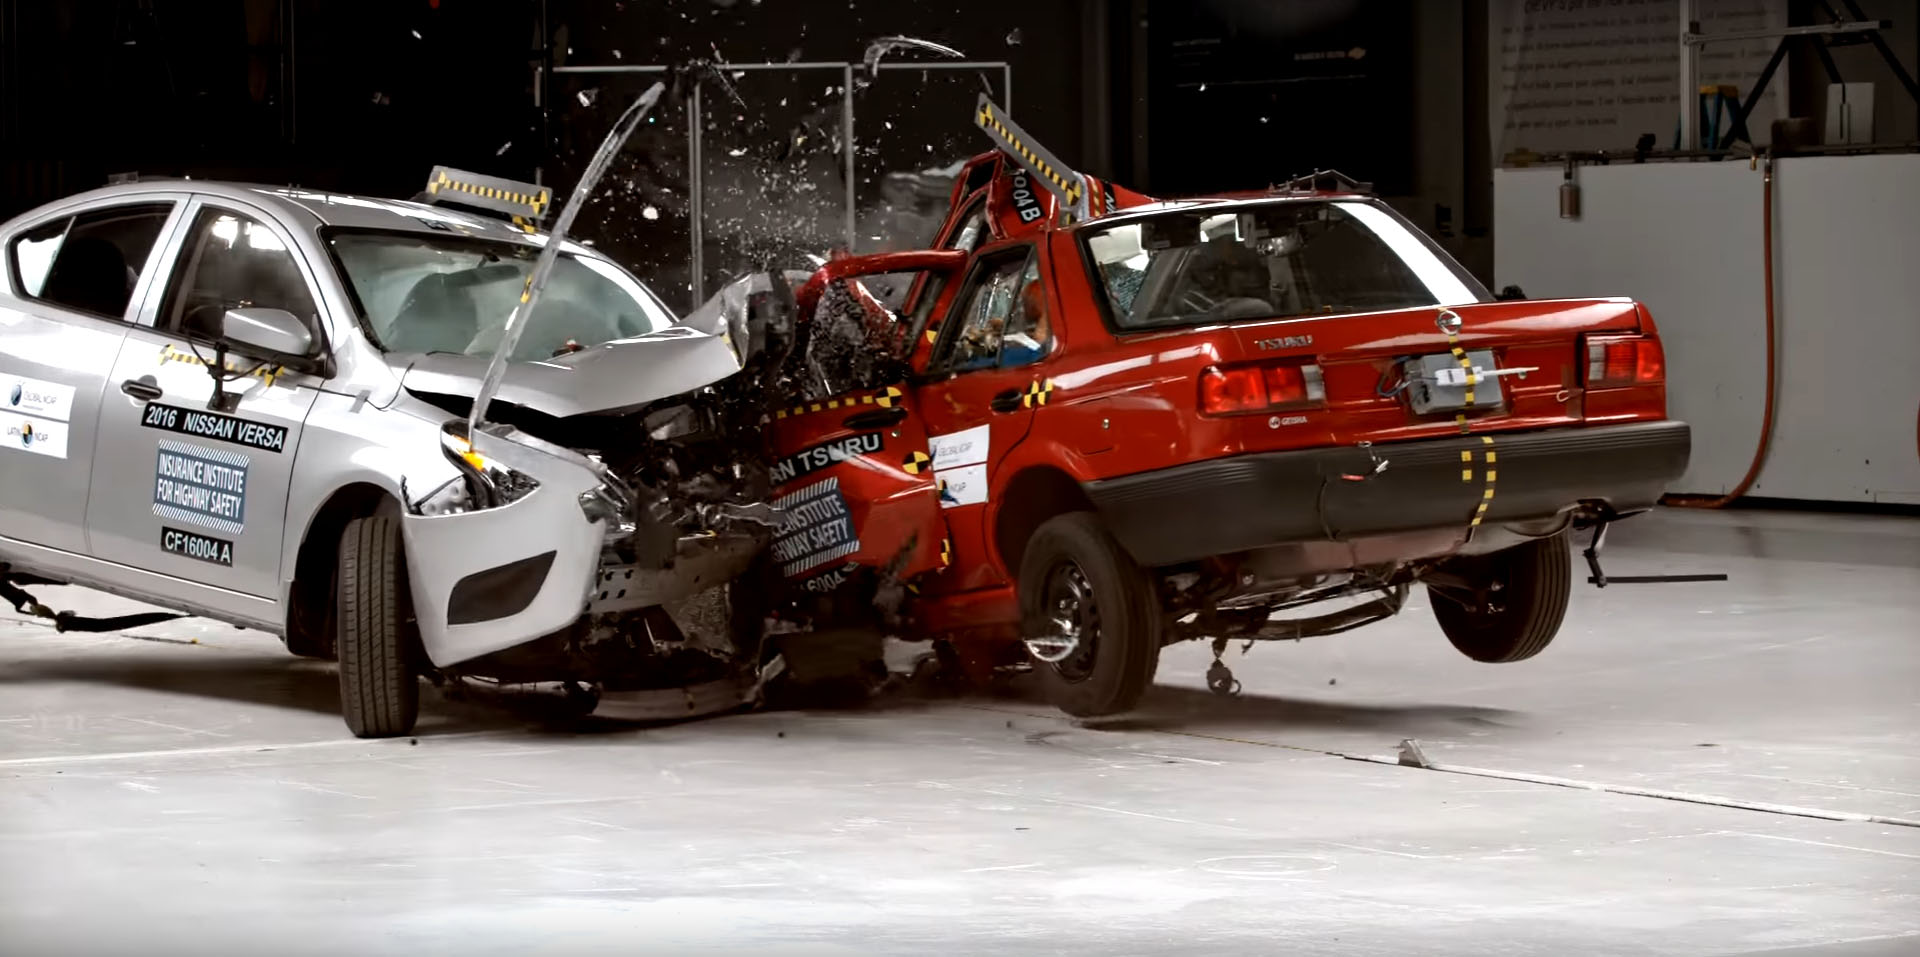 Nissan Nismo Maxima >> Car to Car Crash Test Forces Nissan to Stop Production of Zero Stars Tsuru Model - autoevolution